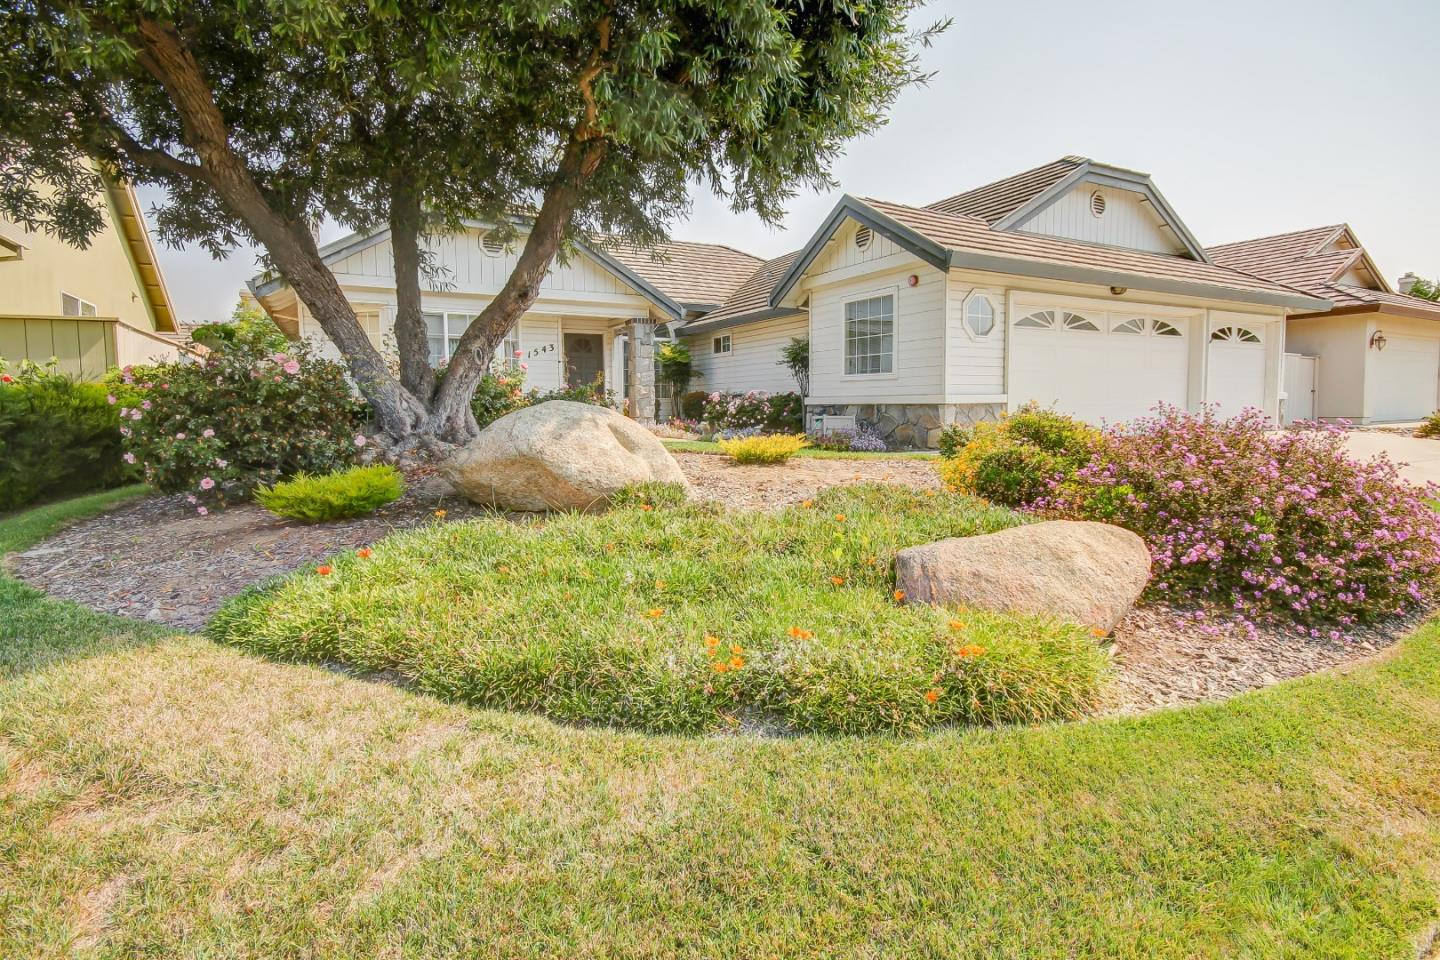 1543 Cambridge Court Salinas, CA 93906 - MLS #: ML81718512